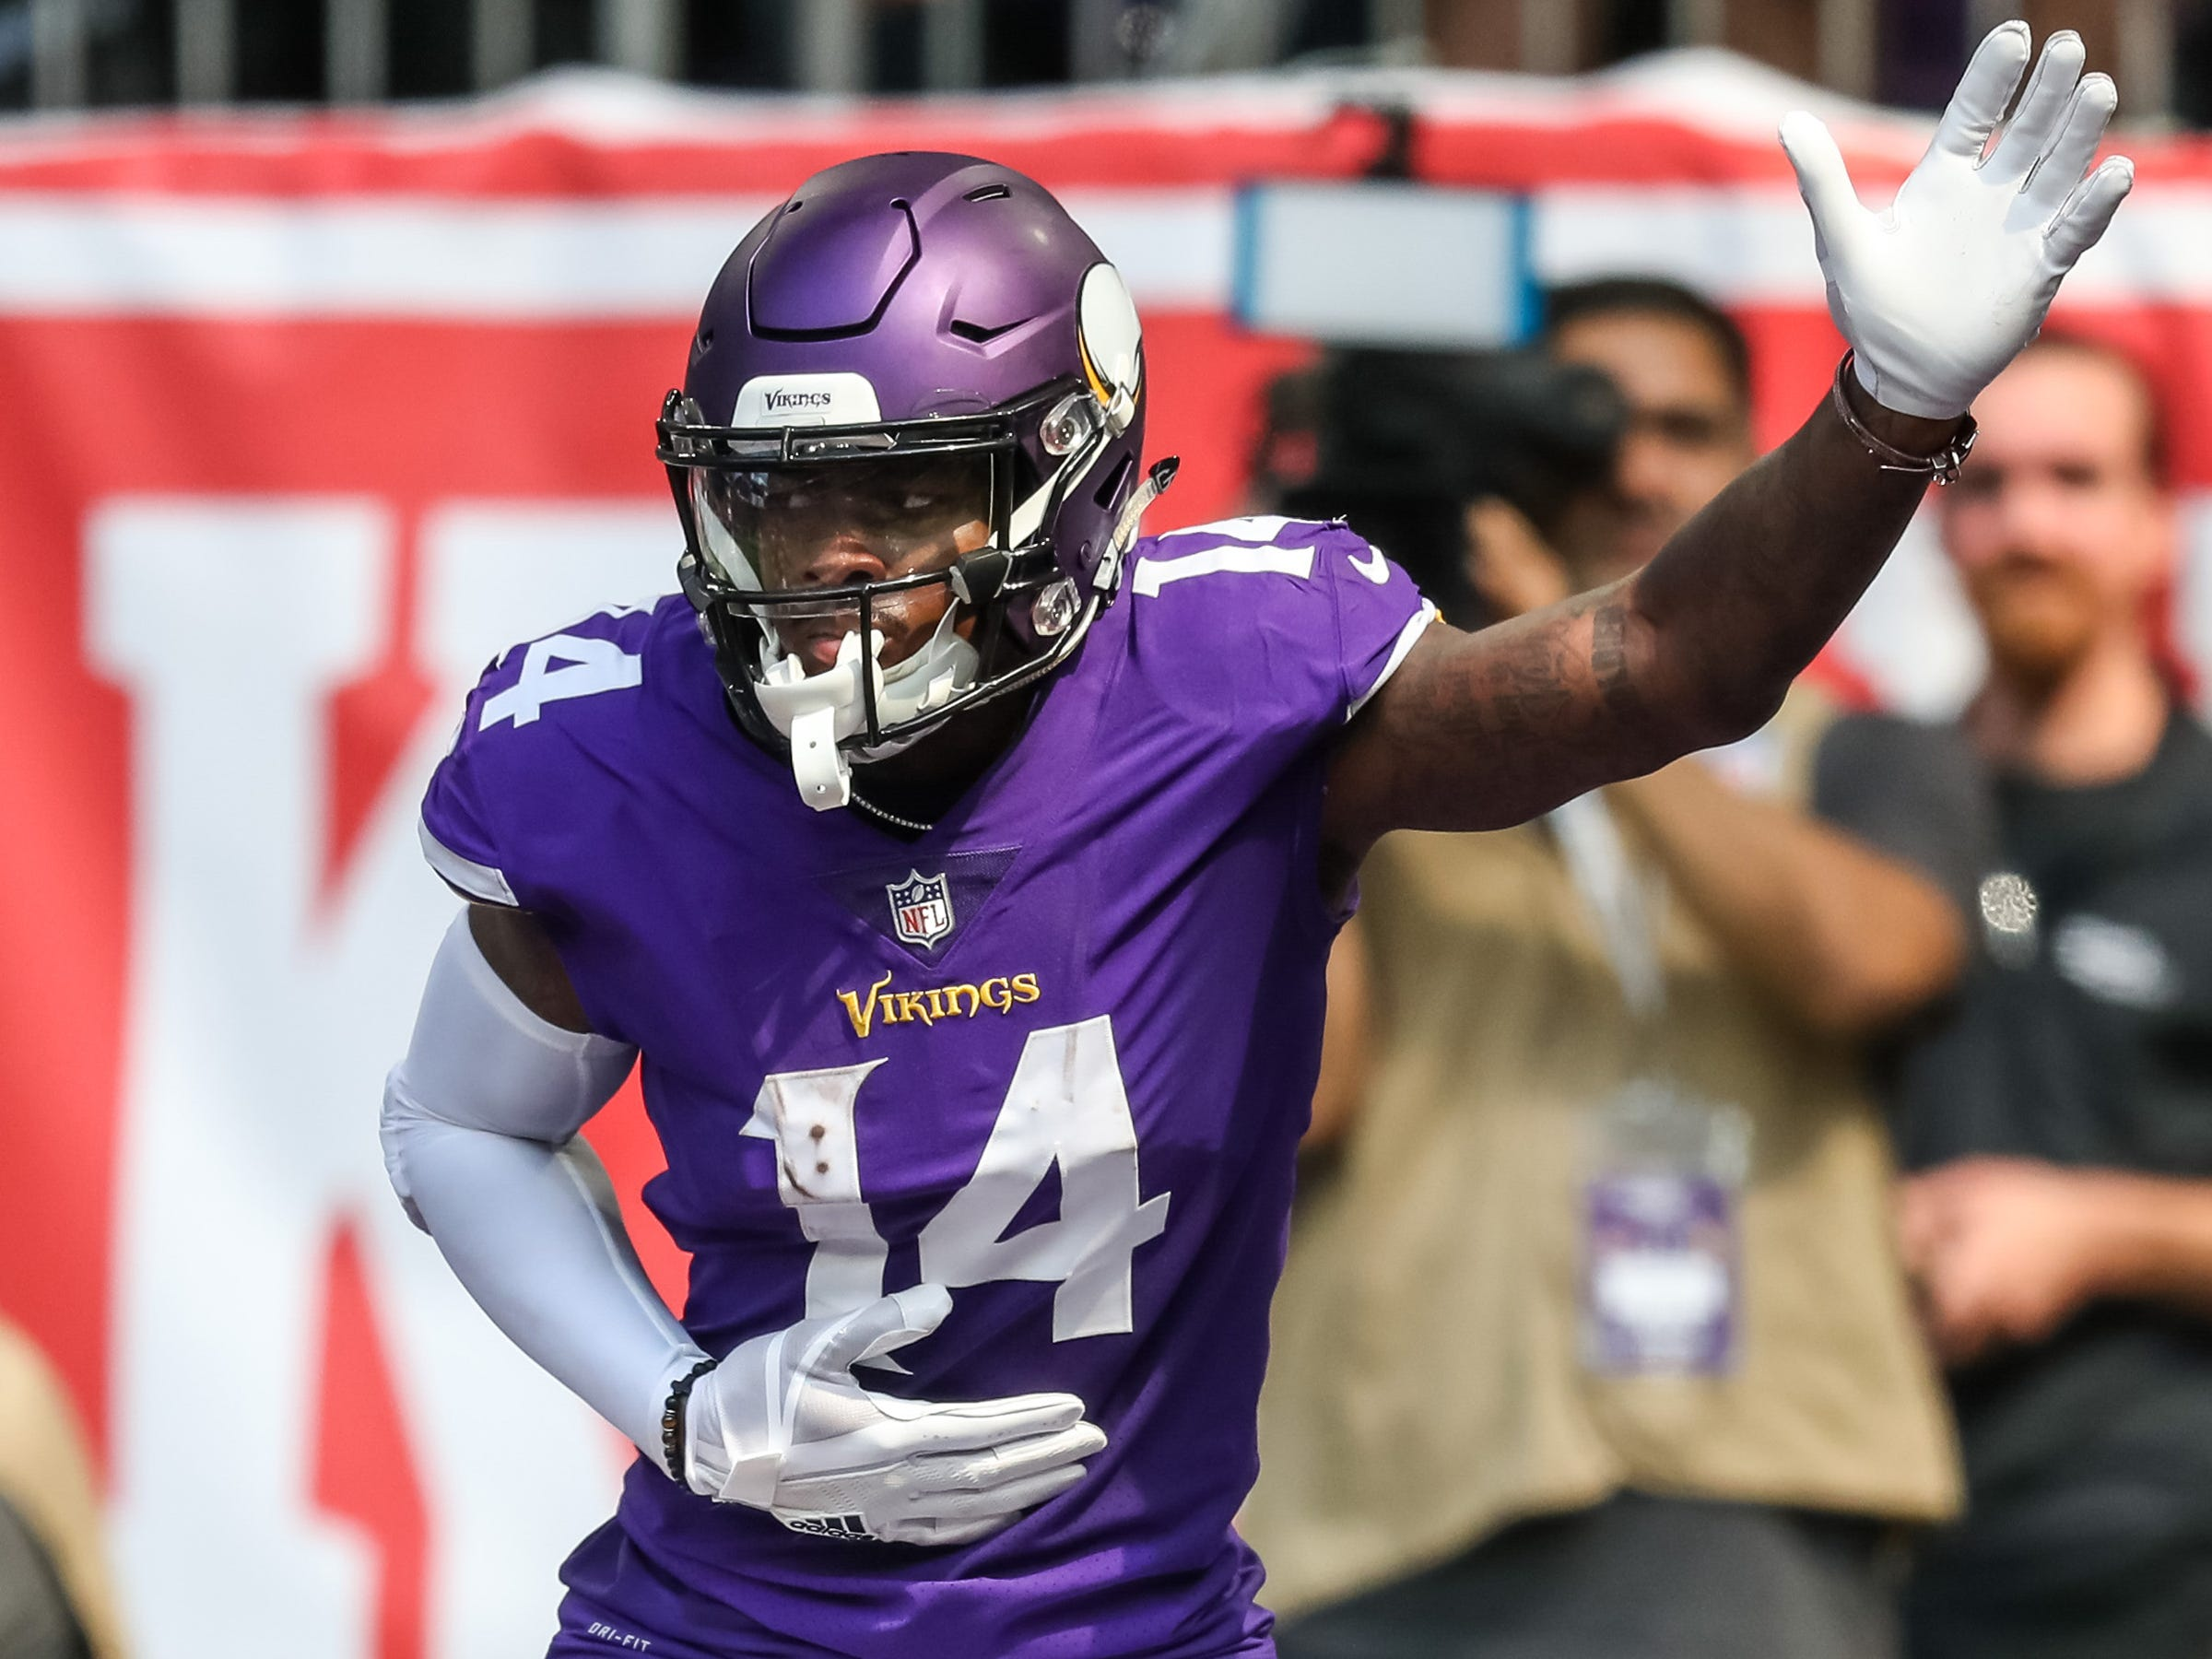 Minnesota Vikings wide receiver Stefon Diggs celebrates his touchdown during the second quarter against San Francisco 49ers at U.S. Bank Stadium.